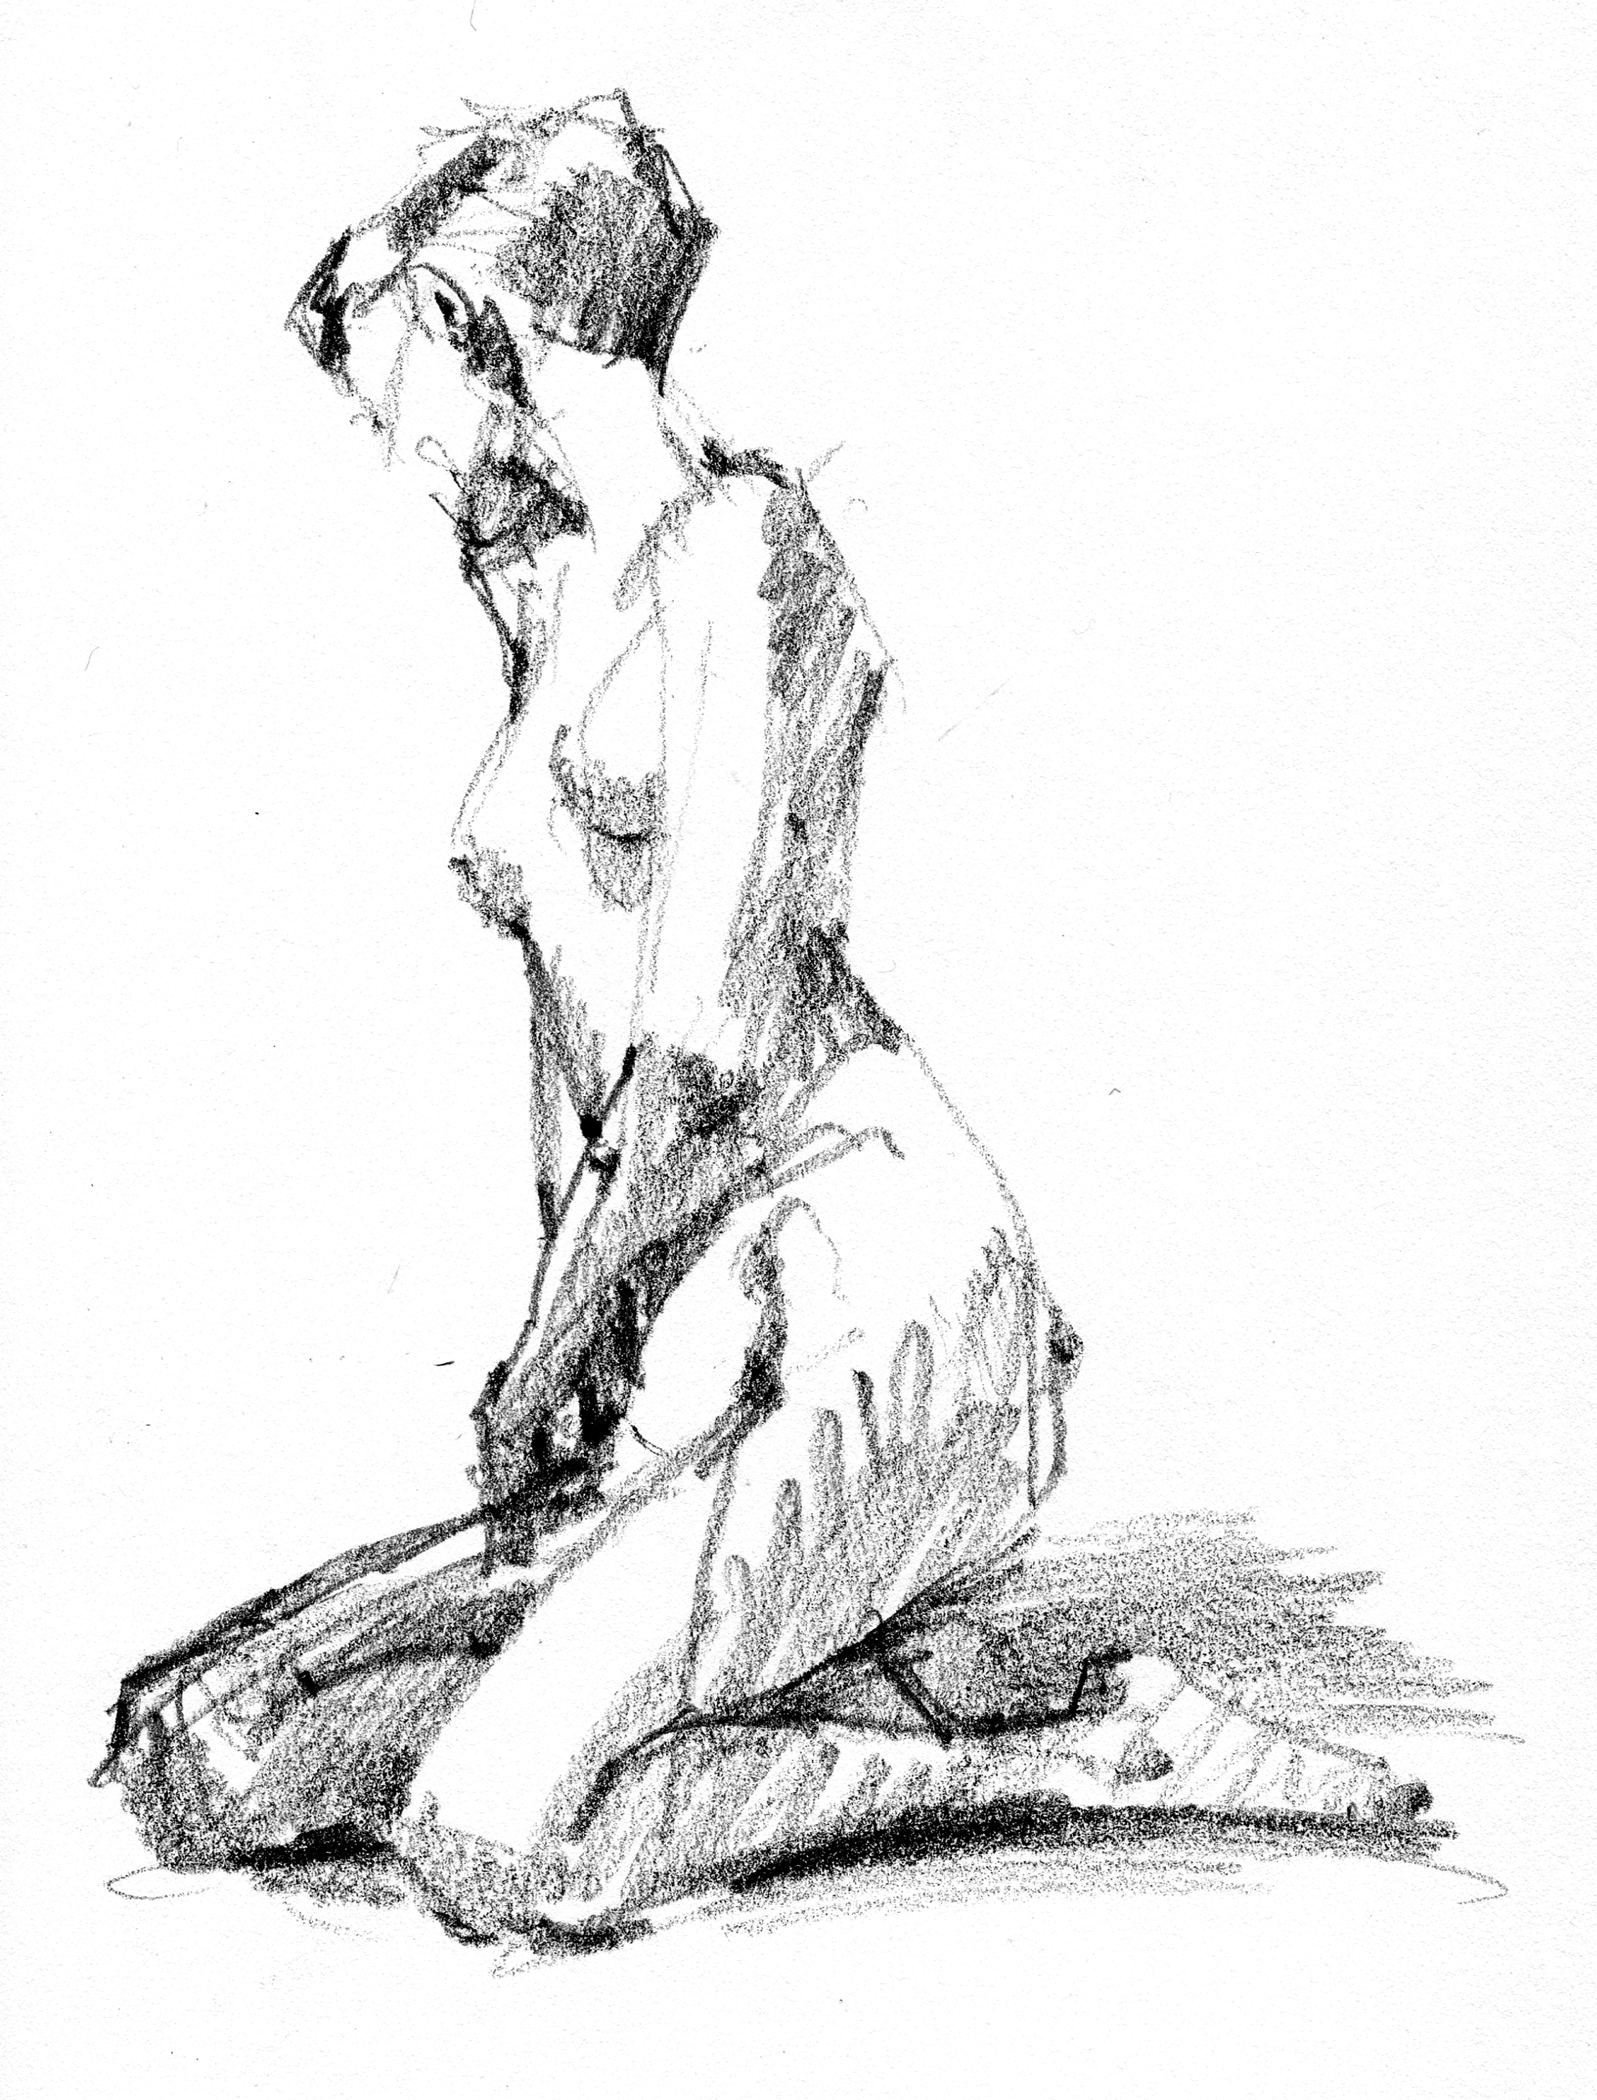 Many thanks nude figure sketch